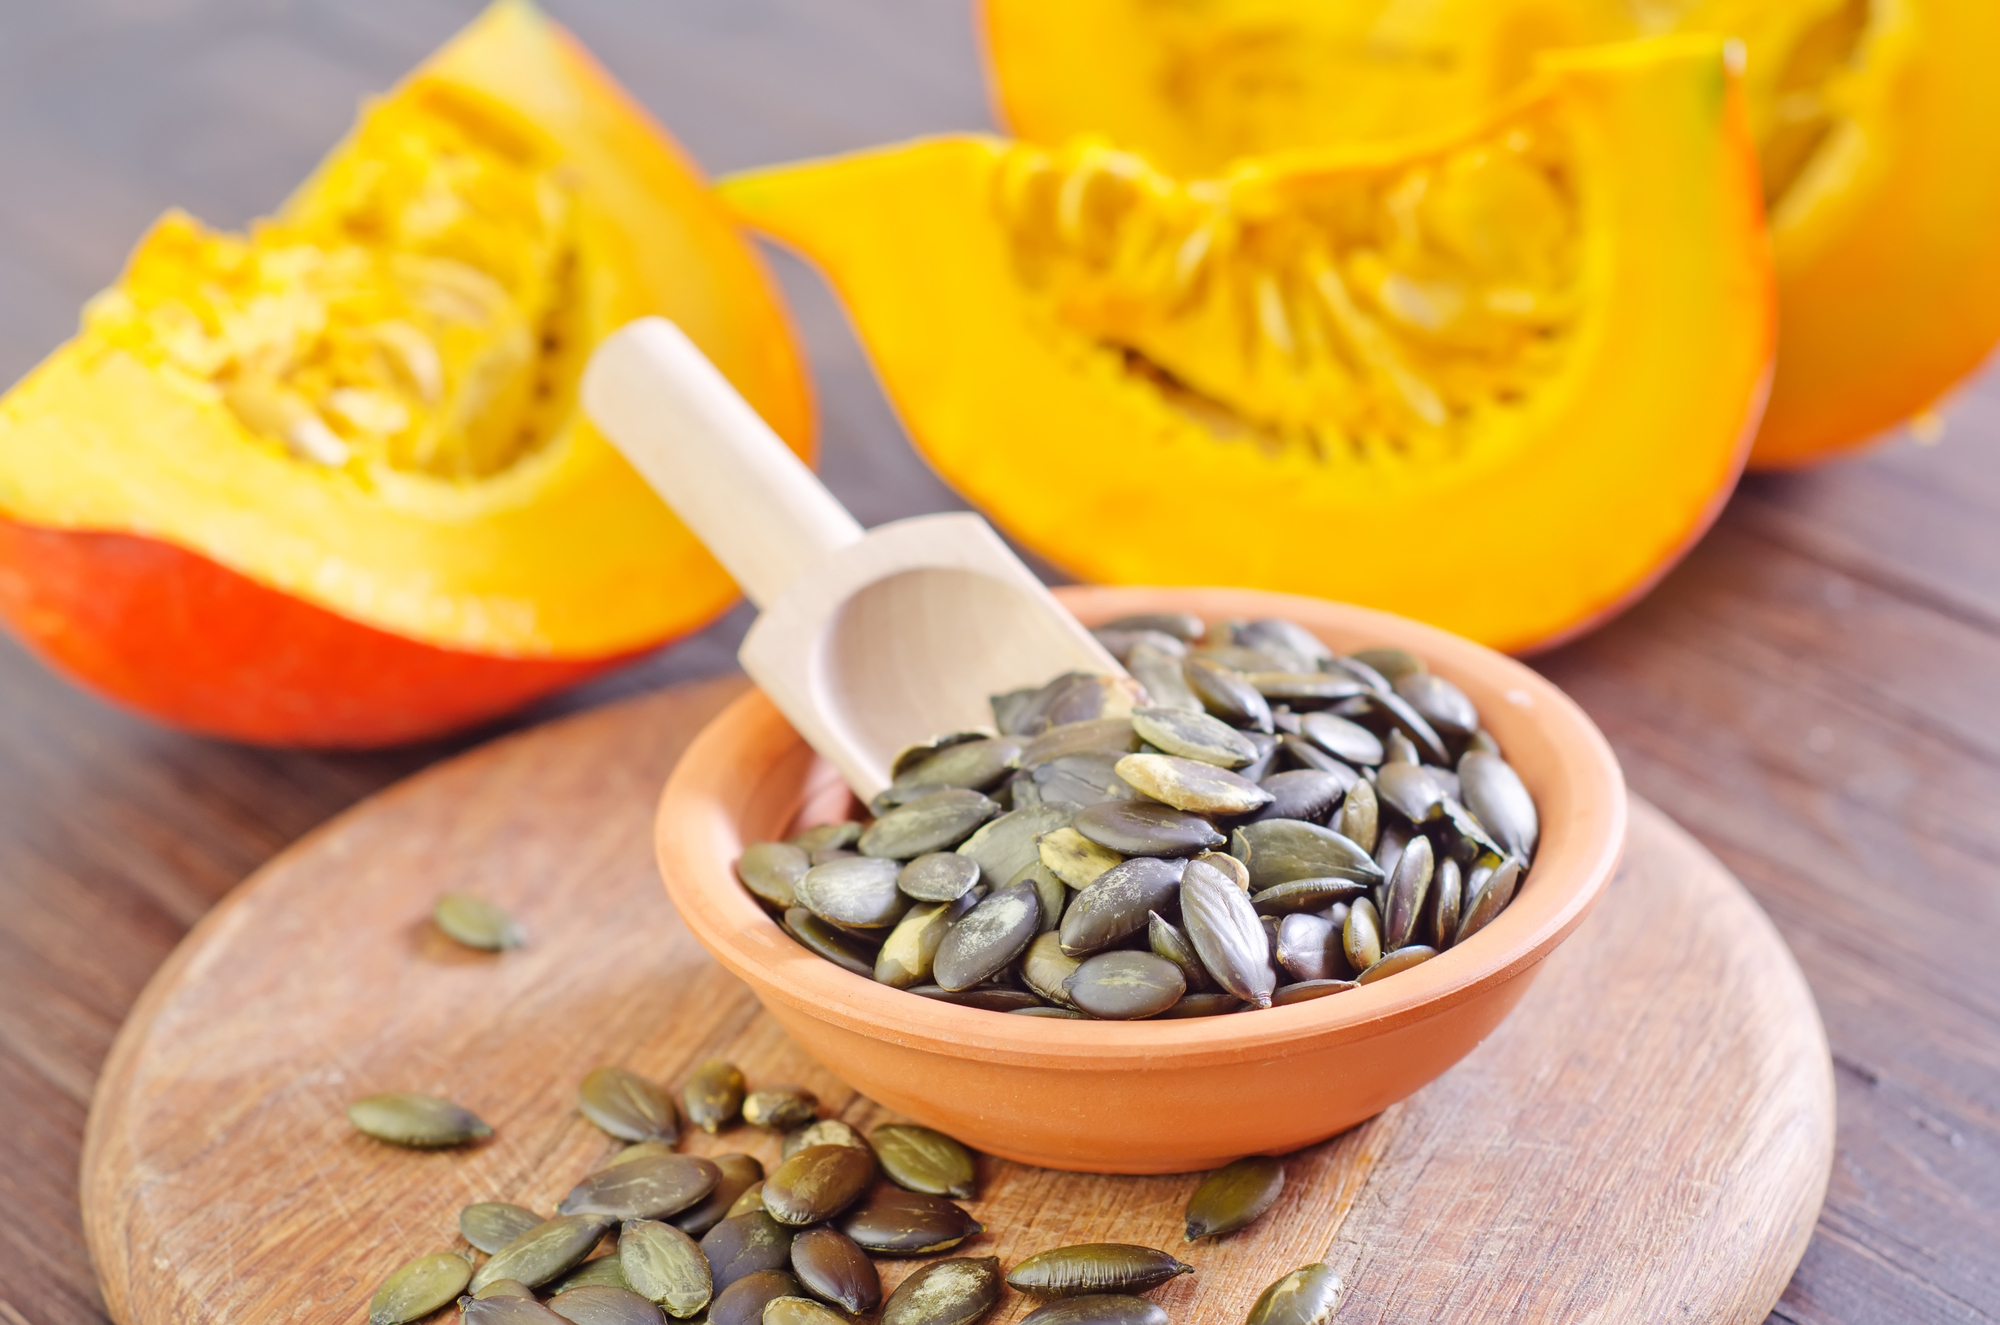 Pumpkin seeds in a bowl with fresh pumpkin squash slices